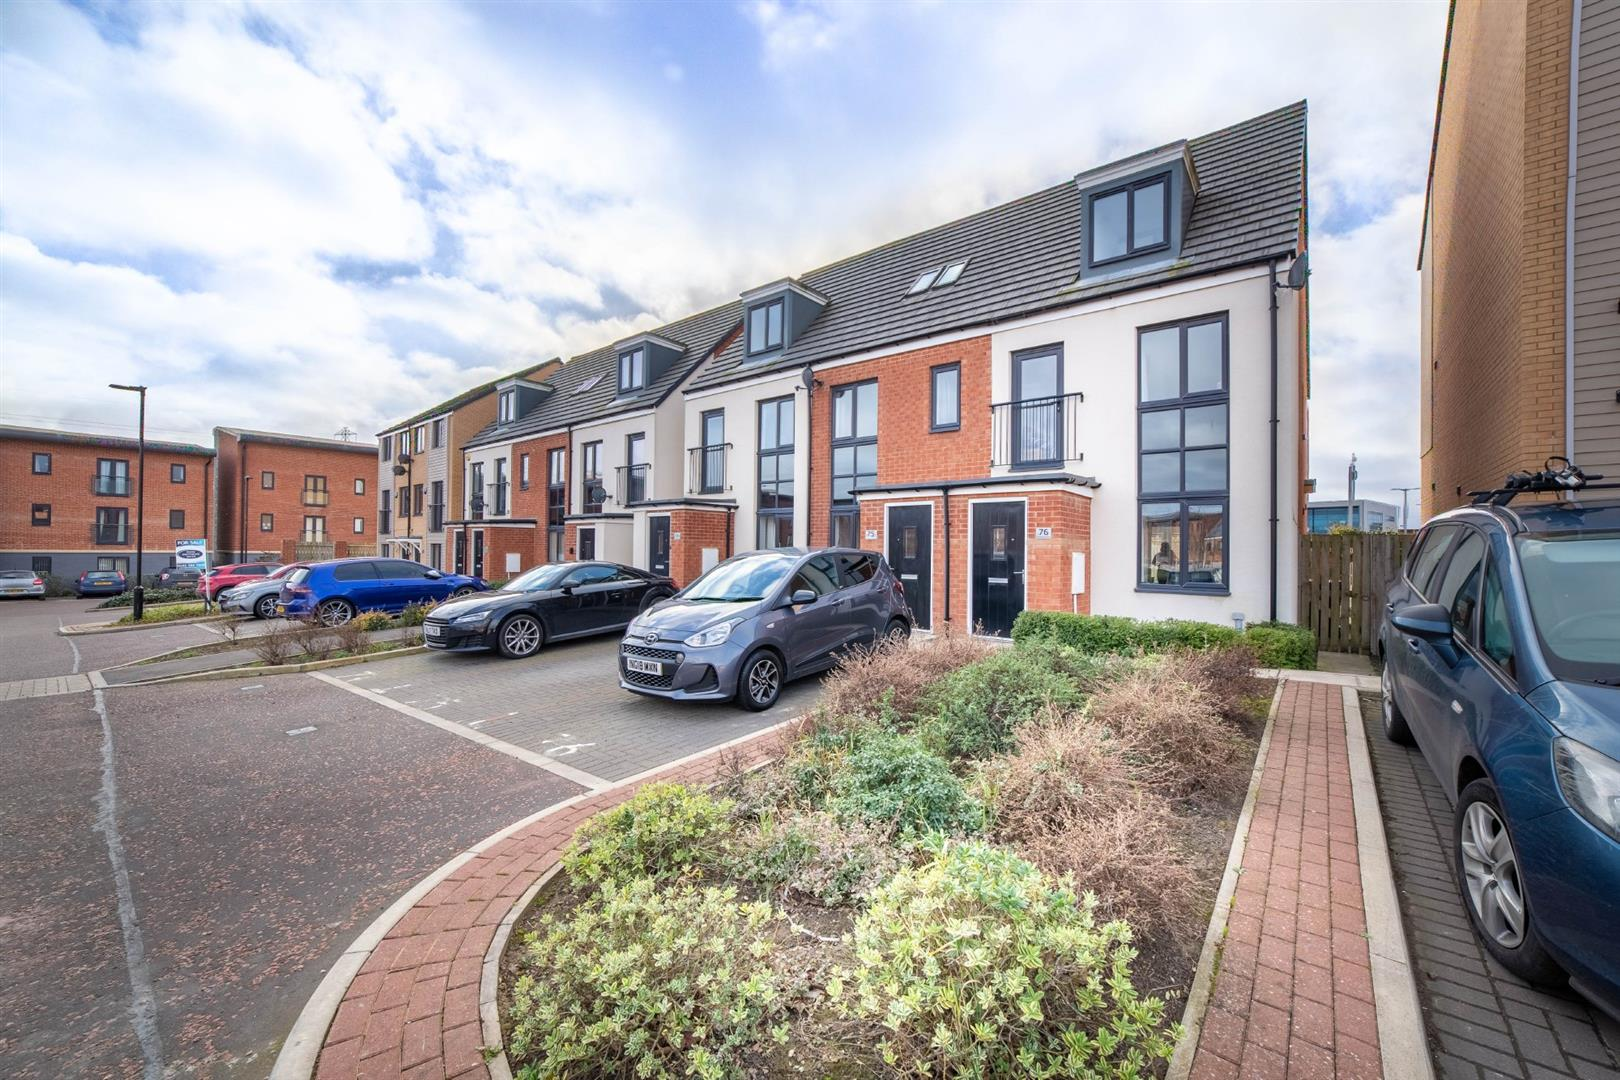 3 bed end of terrace house for sale in Gosforth, NE13 9BS - Property Image 1